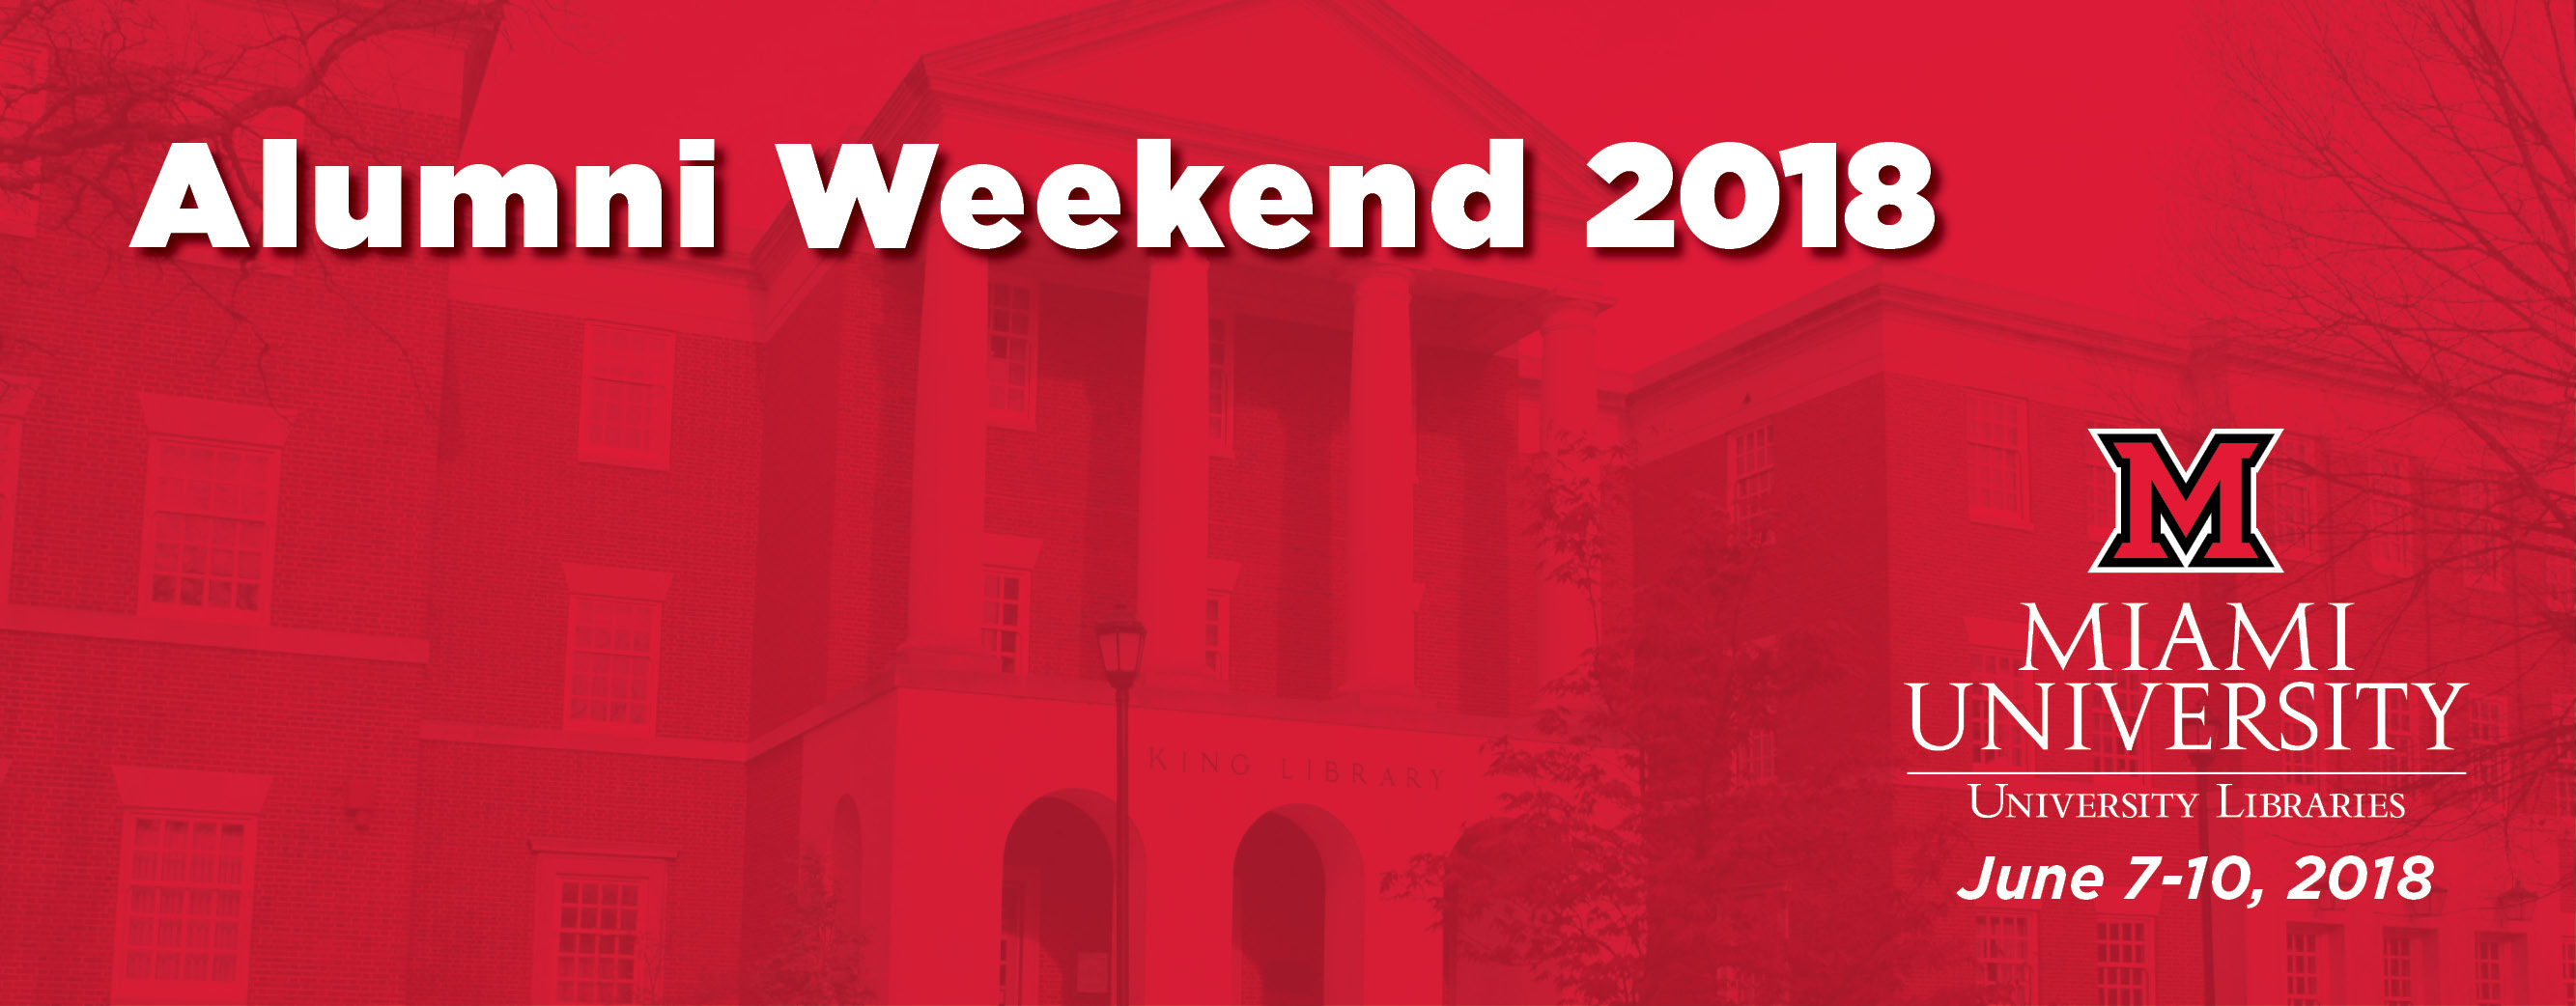 Alumni Weekend 2018: June 7-10